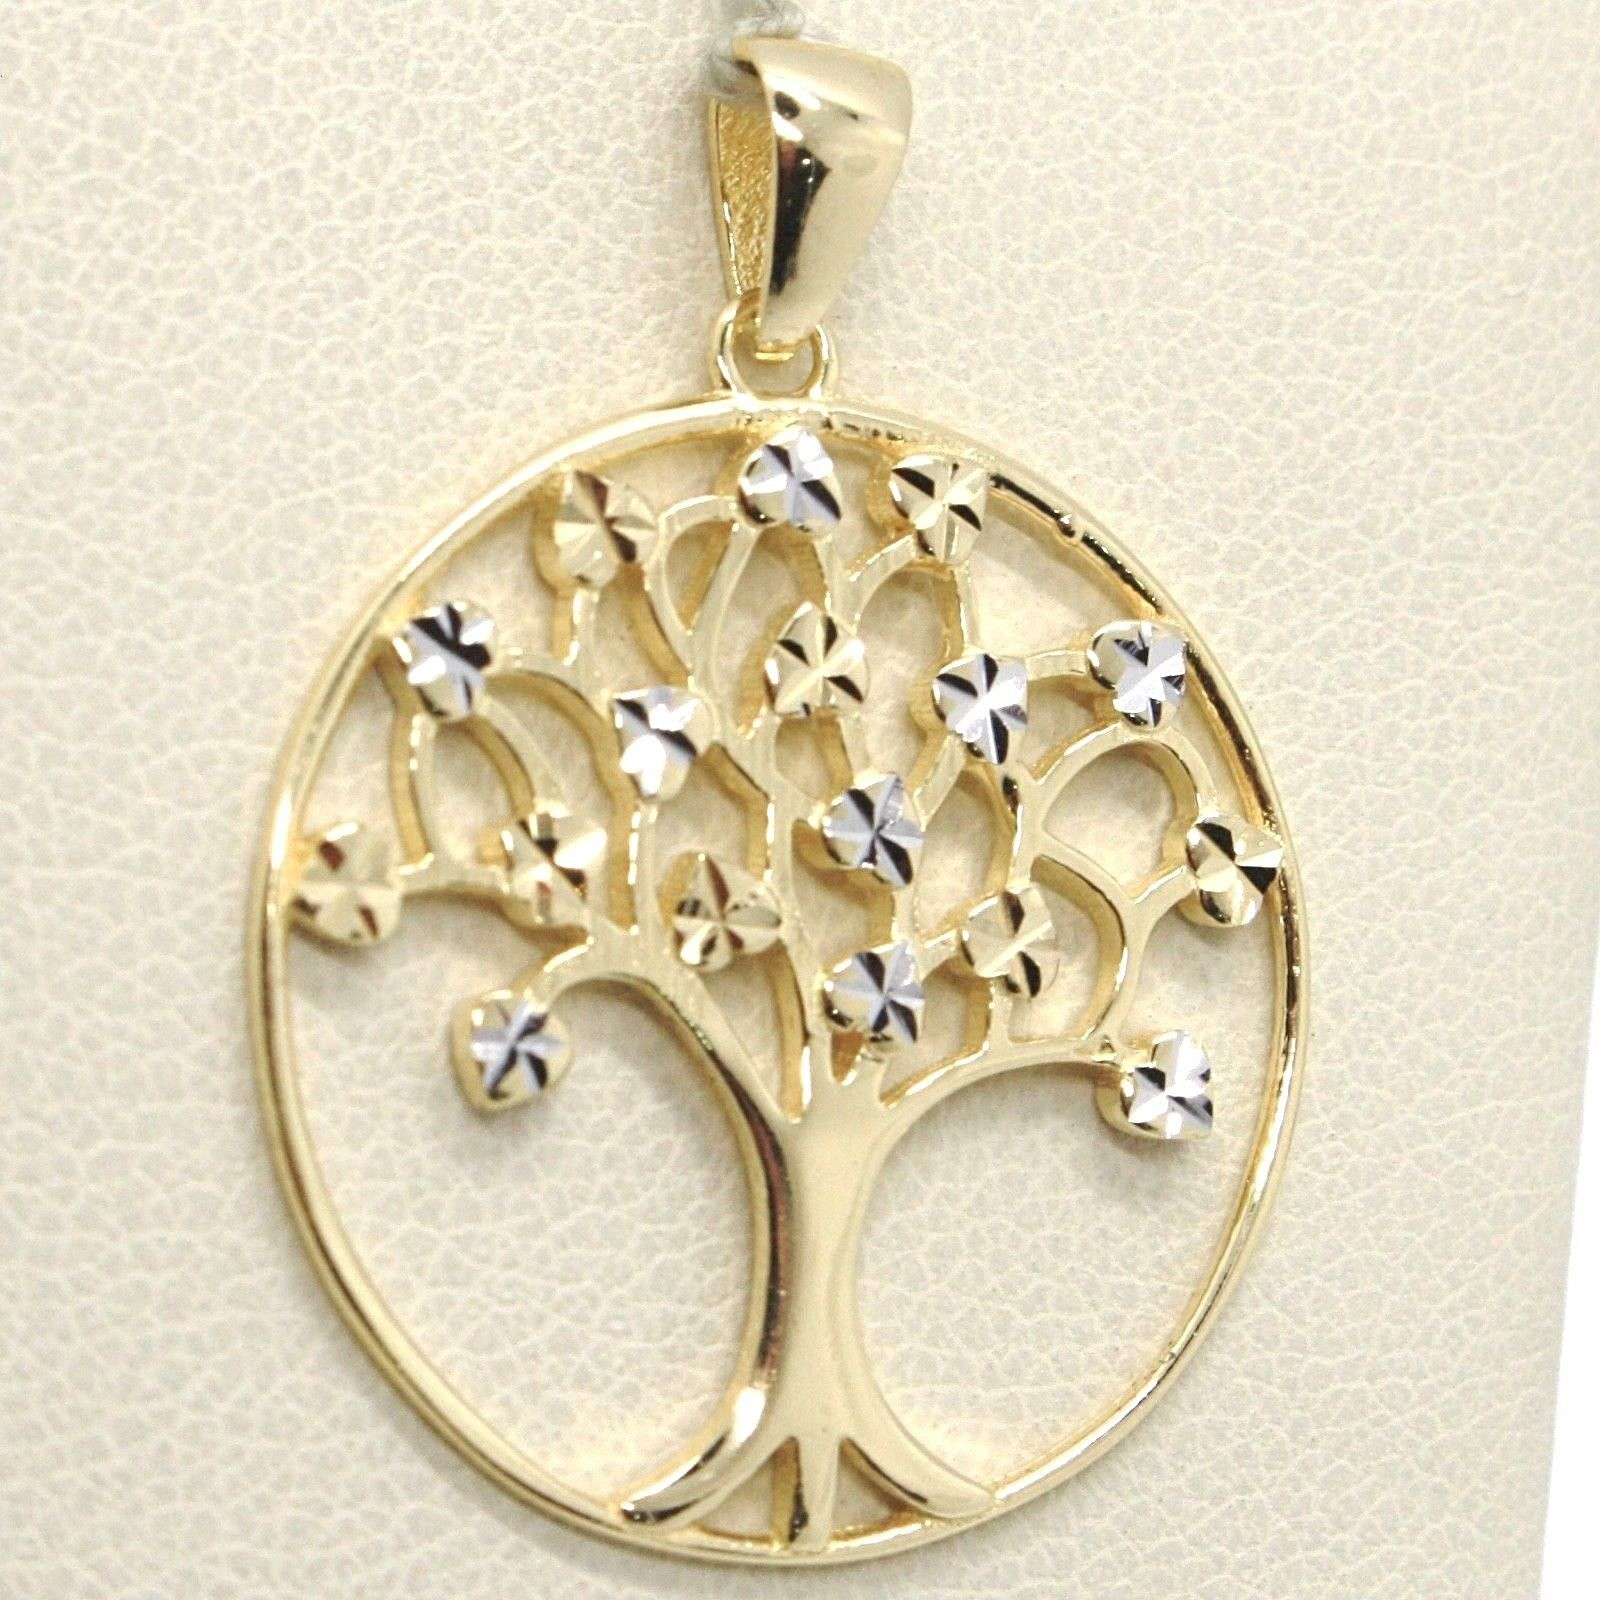 YELLOW GOLD PENDANT WHITE 750 18K, TREE OF LIFE, LEAVES, MADE IN ITALY